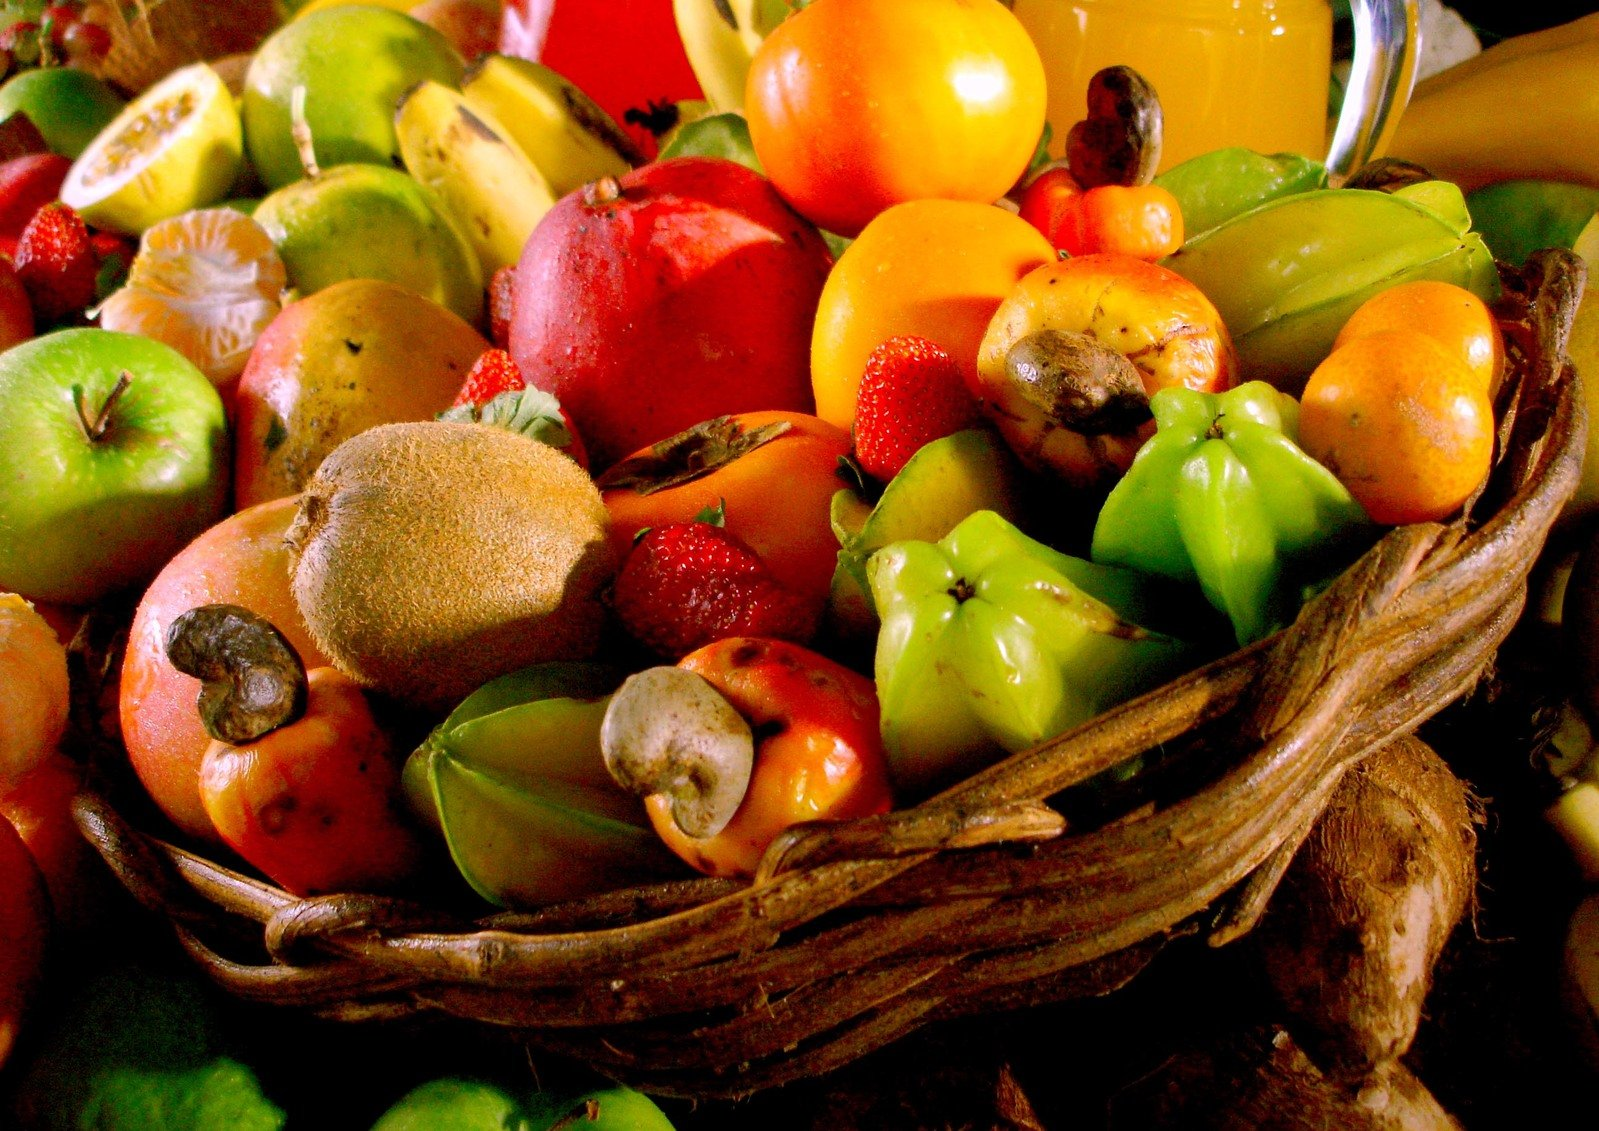 Fruits and Vegetables of Brazil 5